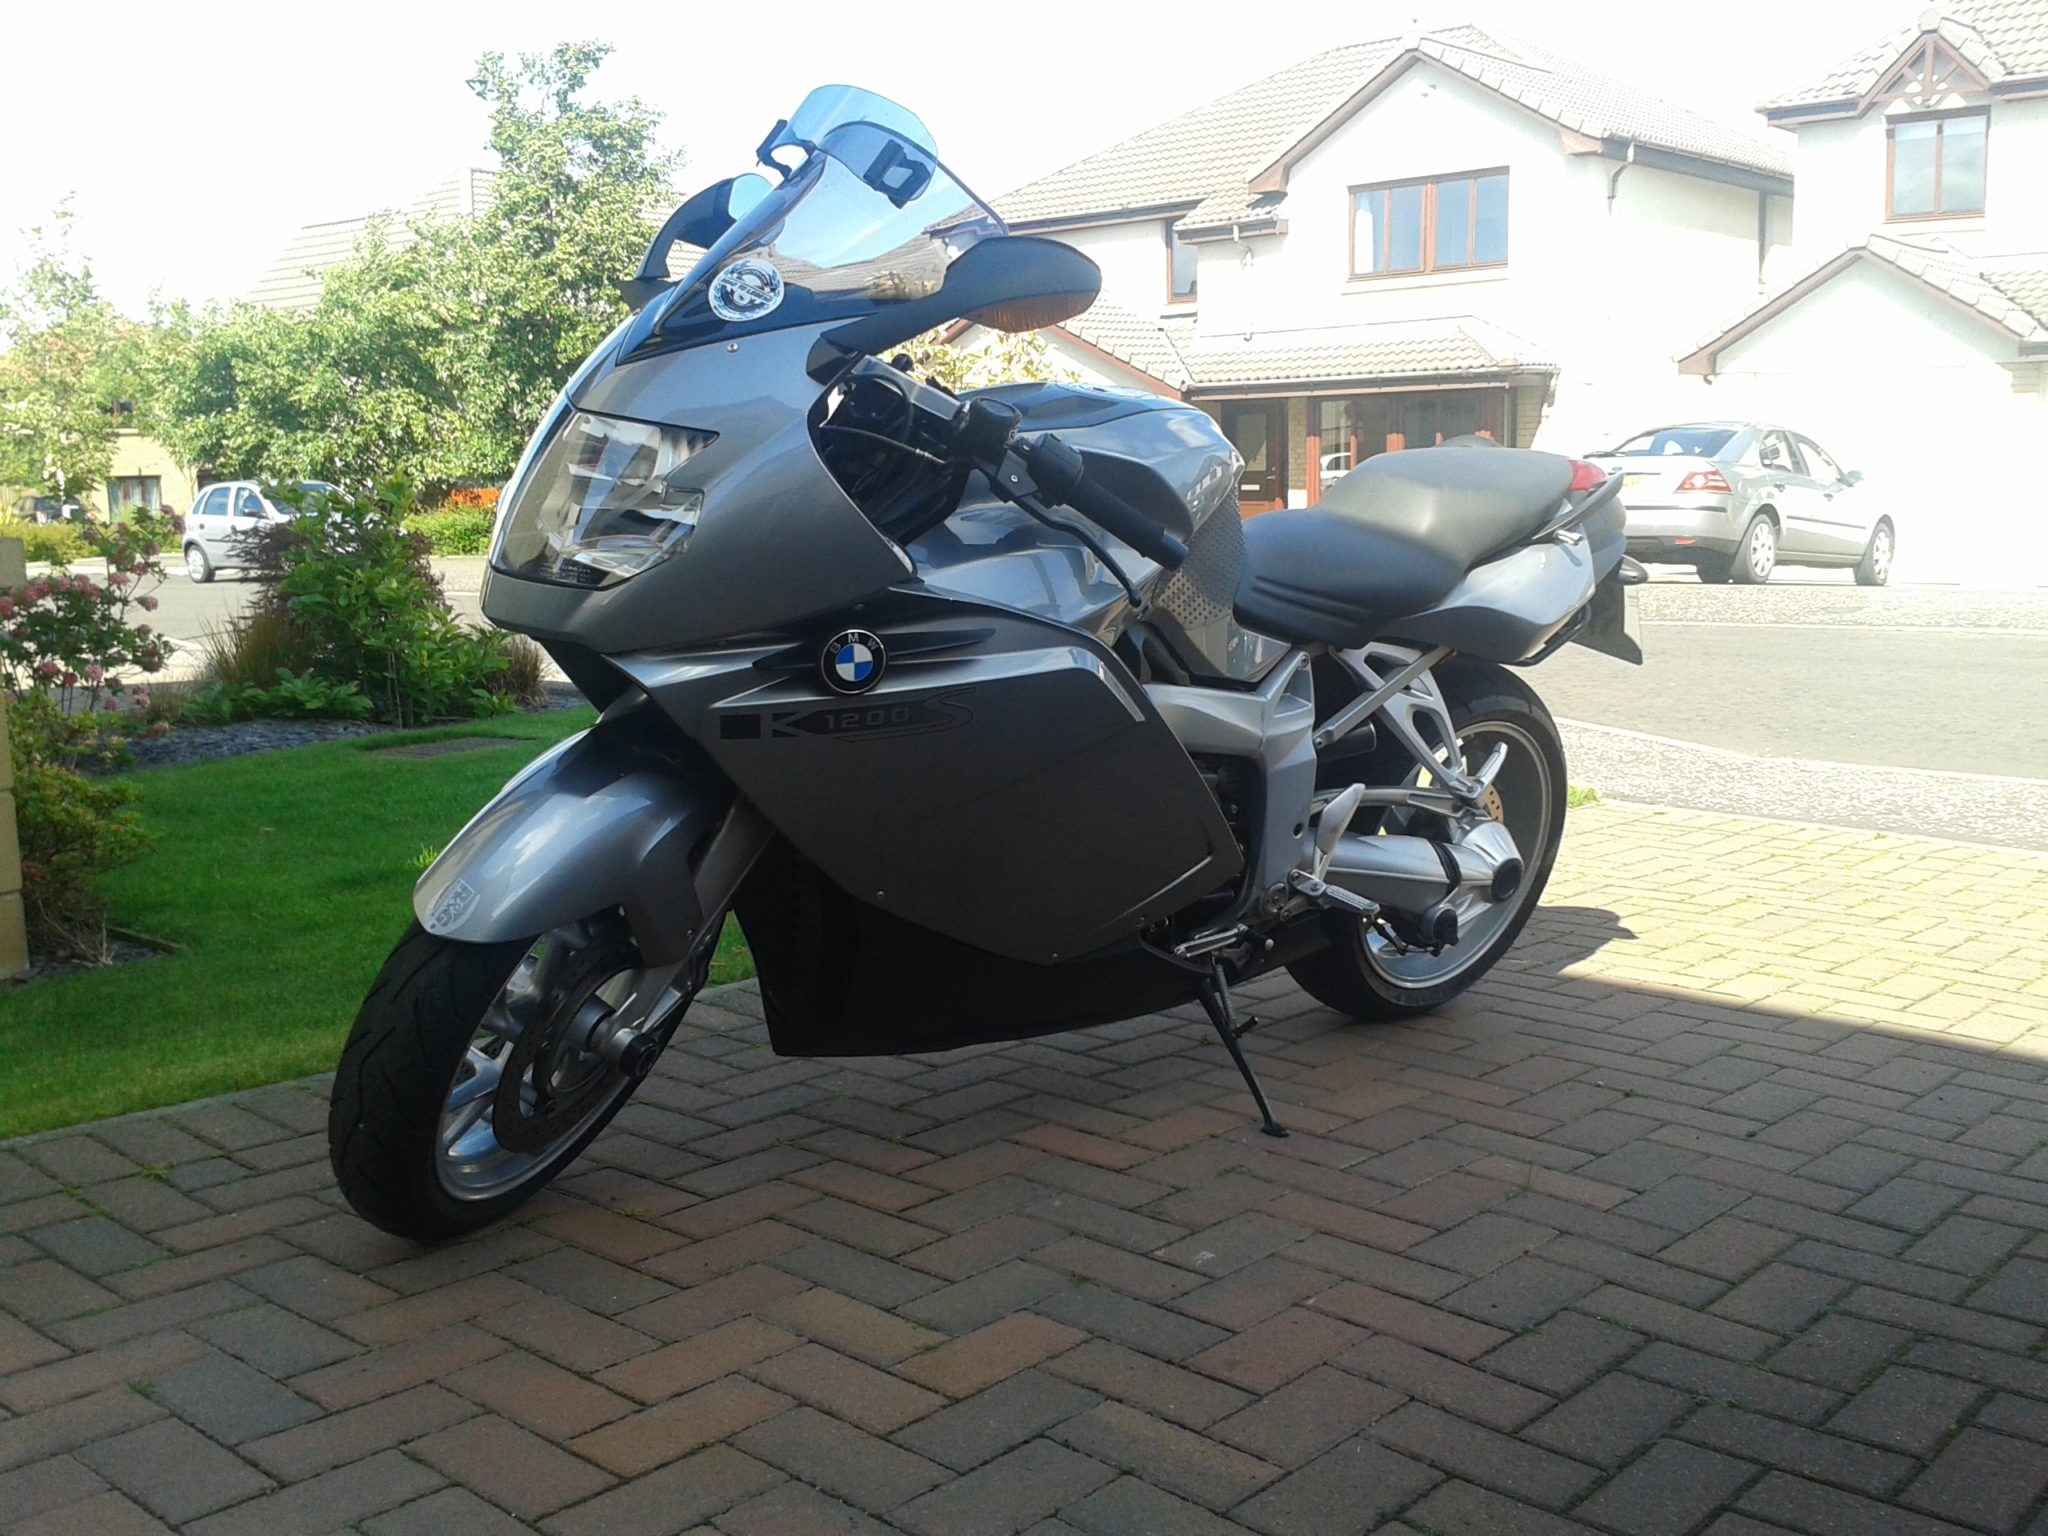 Keith Longworth – BMW K1200S